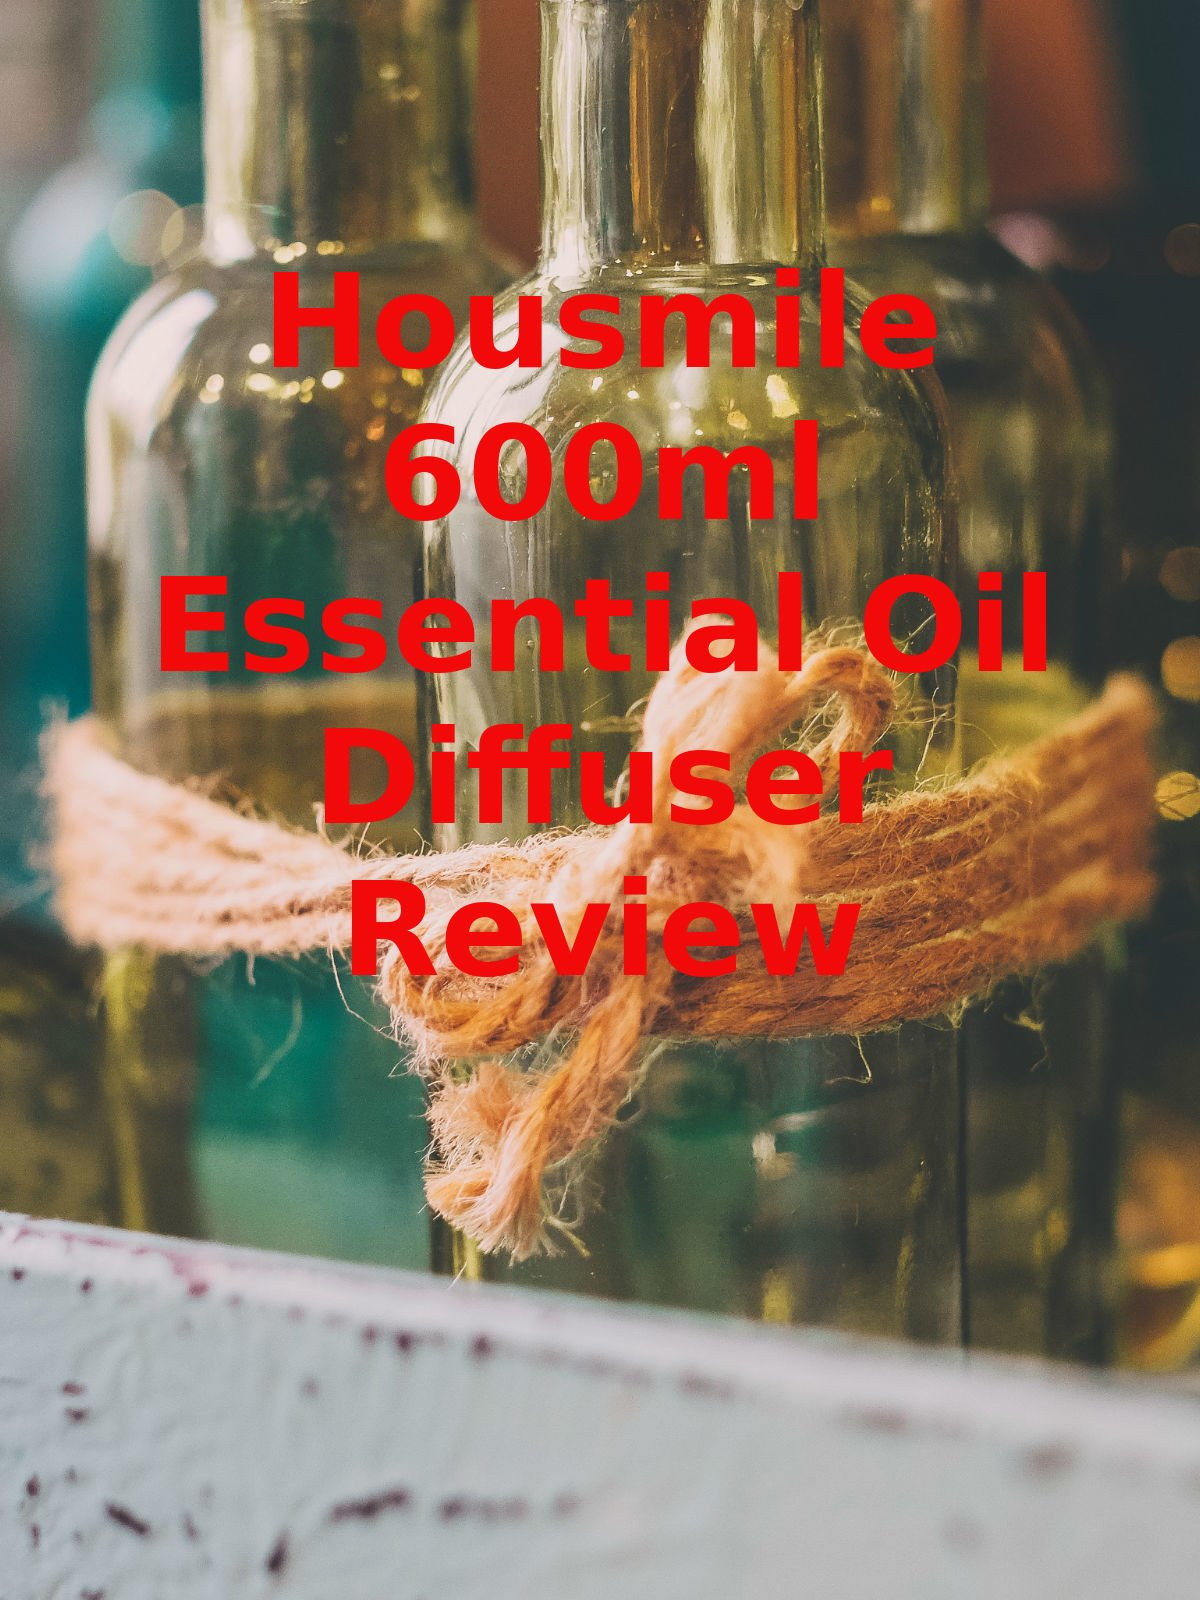 Review: Housmile 600ml Essential Oil Diffuser Review on Amazon Prime Video UK